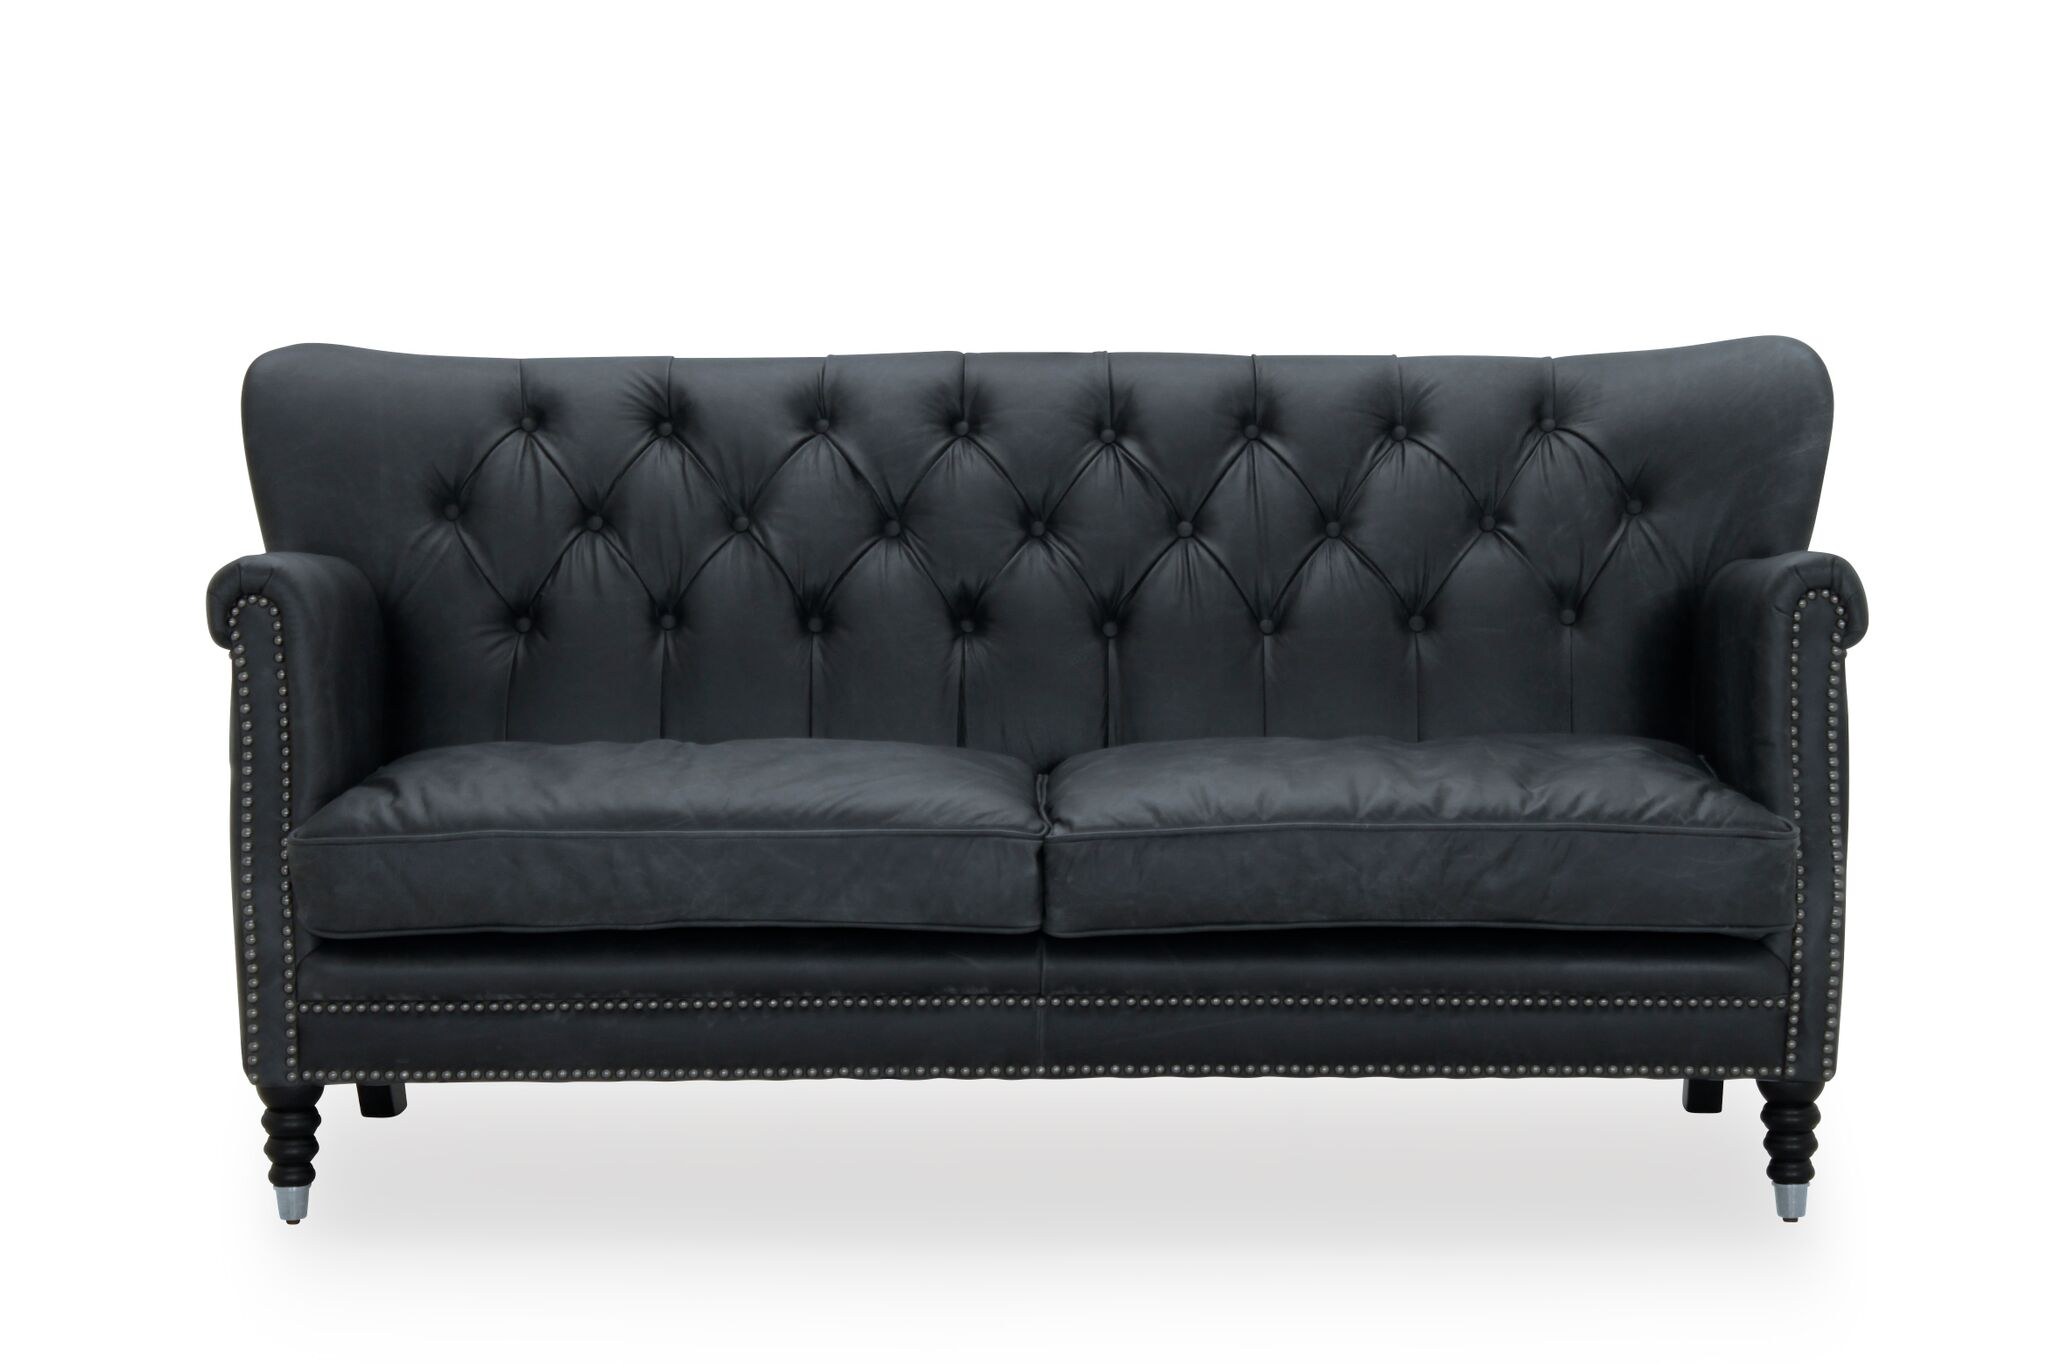 antik lder sofa i sort kb en glasgow sofa her. Black Bedroom Furniture Sets. Home Design Ideas